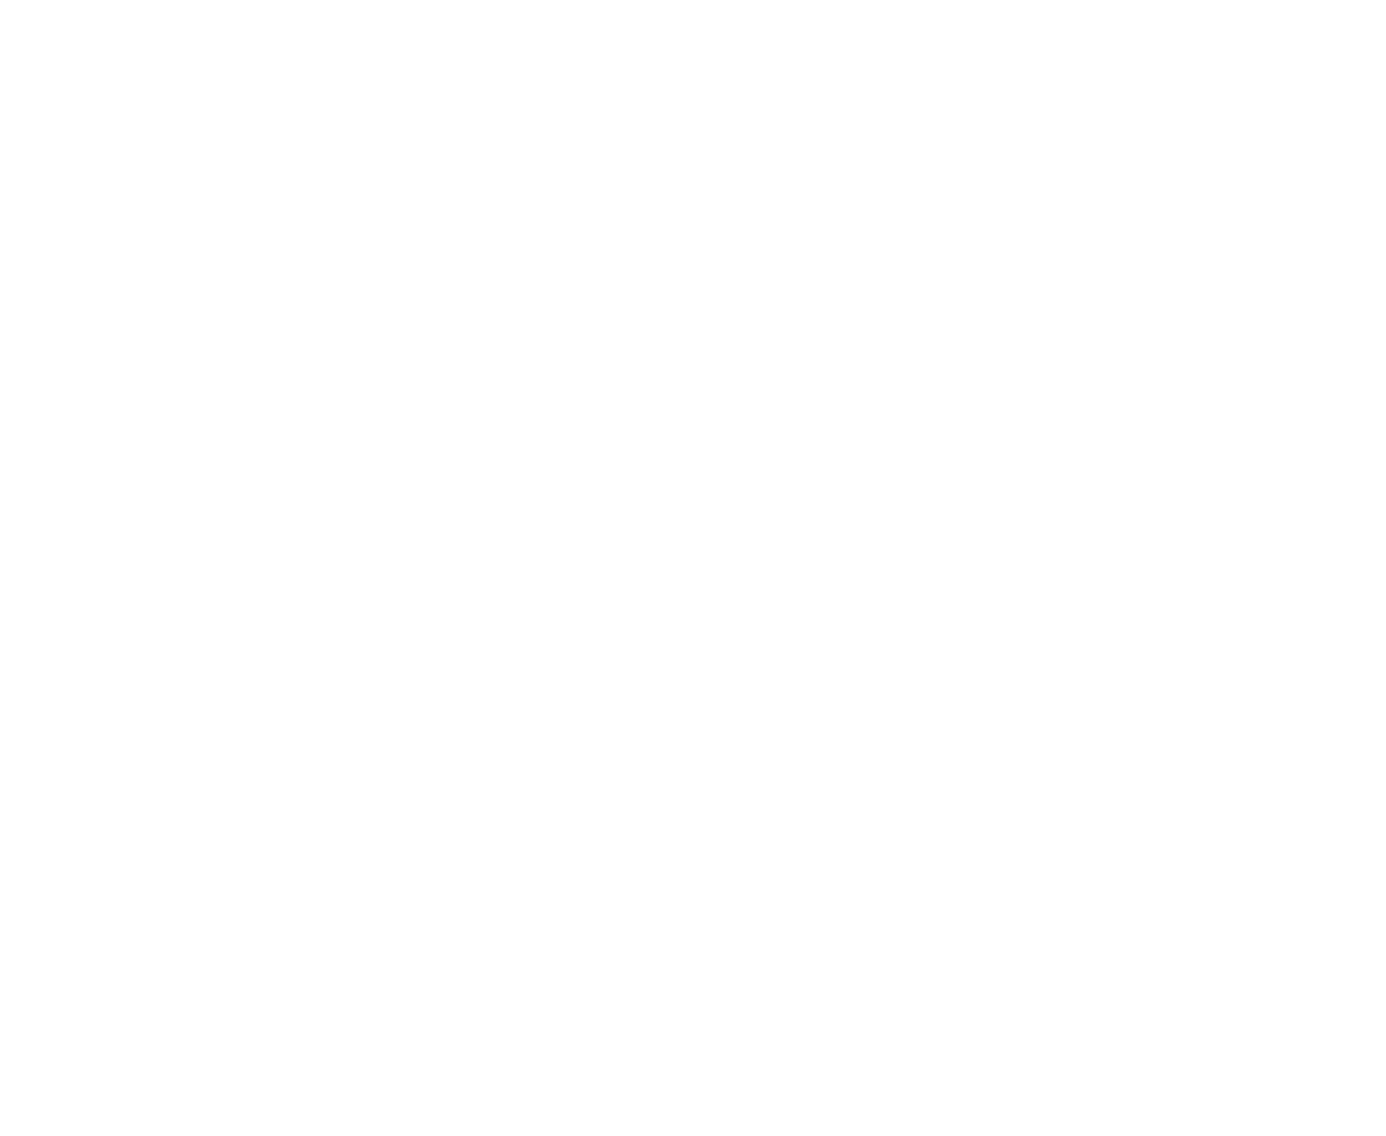 Wills-Camp Lofts